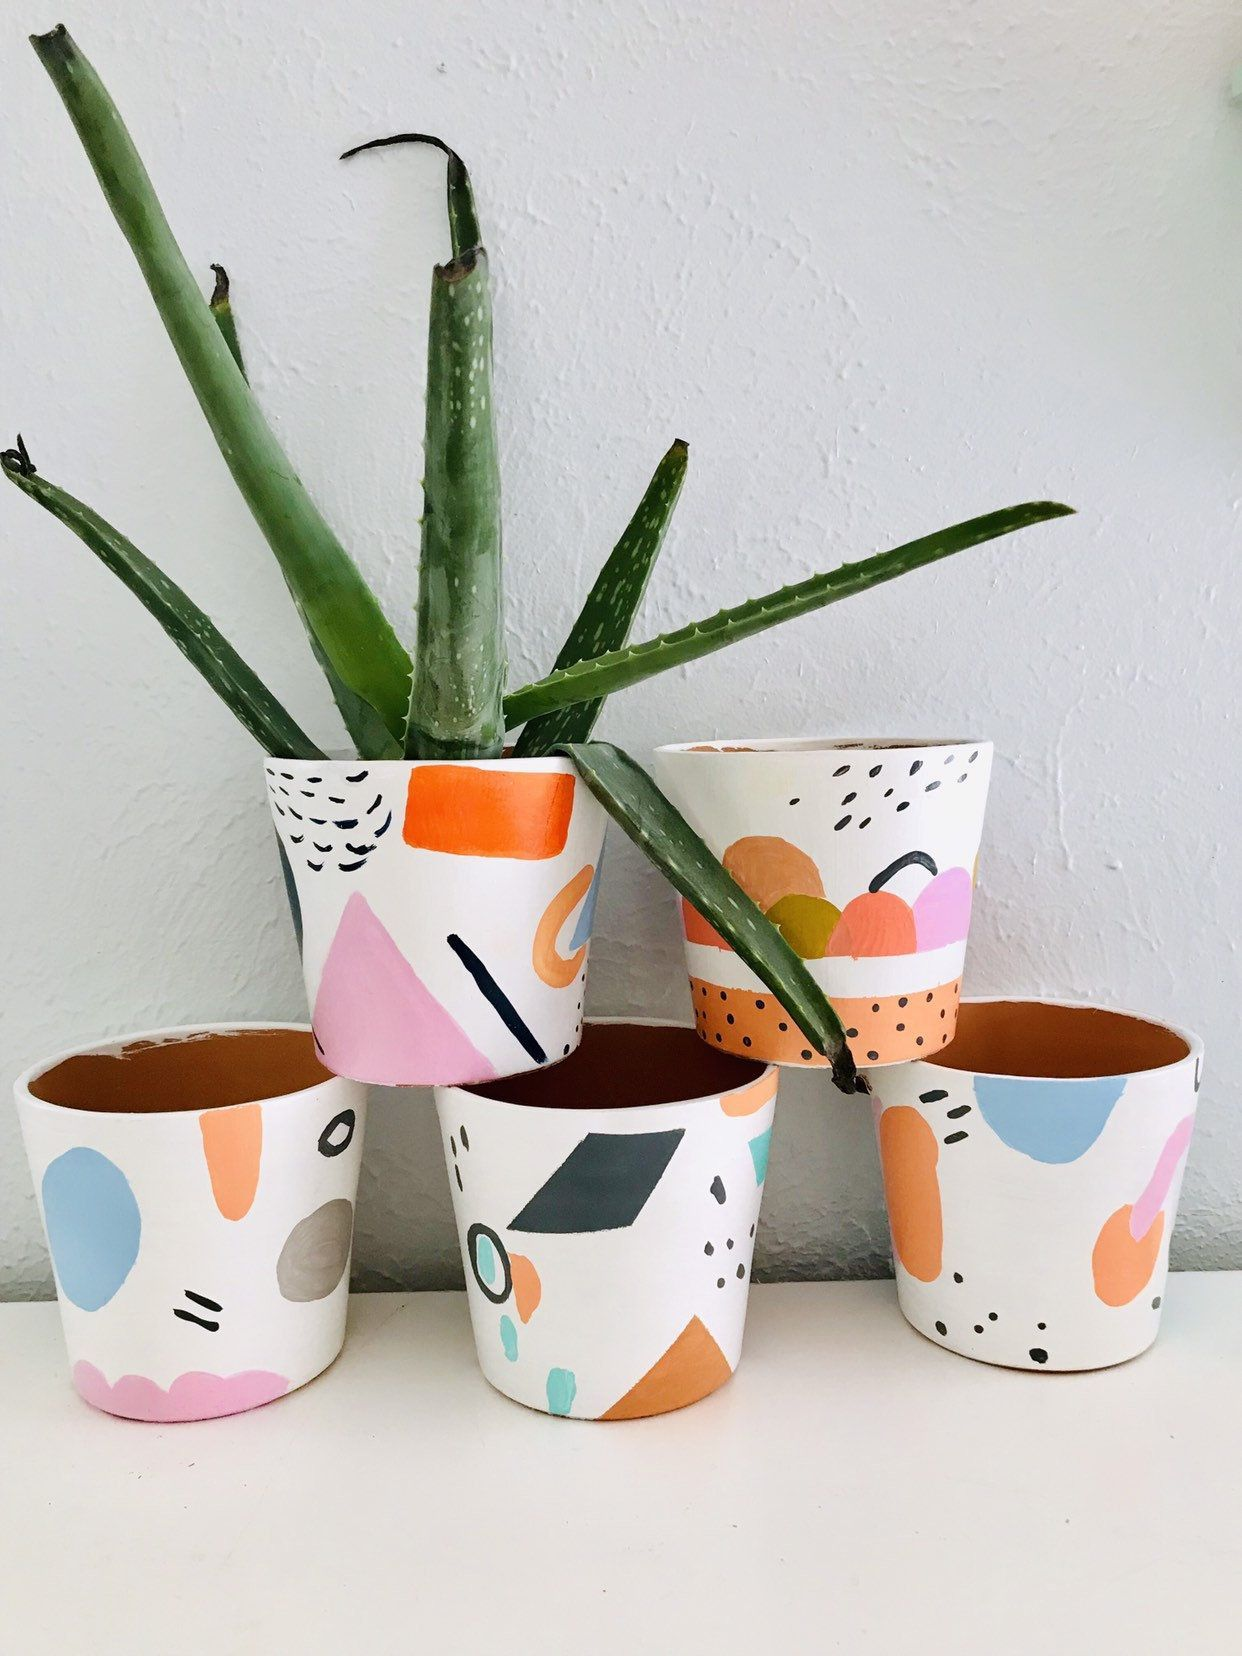 Best 12 Hand Painted One Of A Kind Planters Etsy Skillofking Com Painted Plant Pots Painted Pots Diy Painted Flower Pots